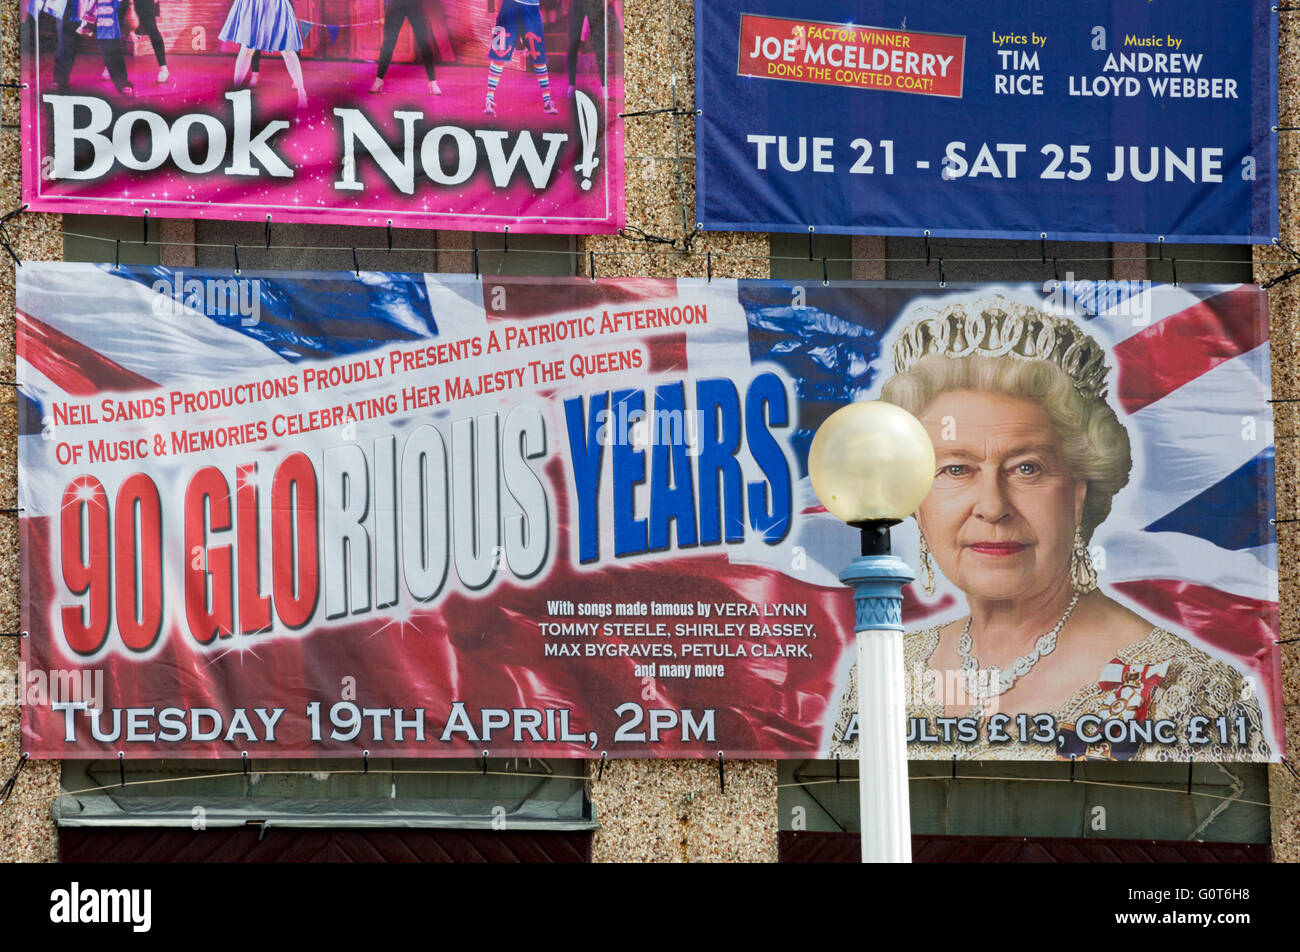 Banner promoting event to celebrate the Queen's 90 glorious years on outside wall of Weymouth Pavilion in May - Stock Image